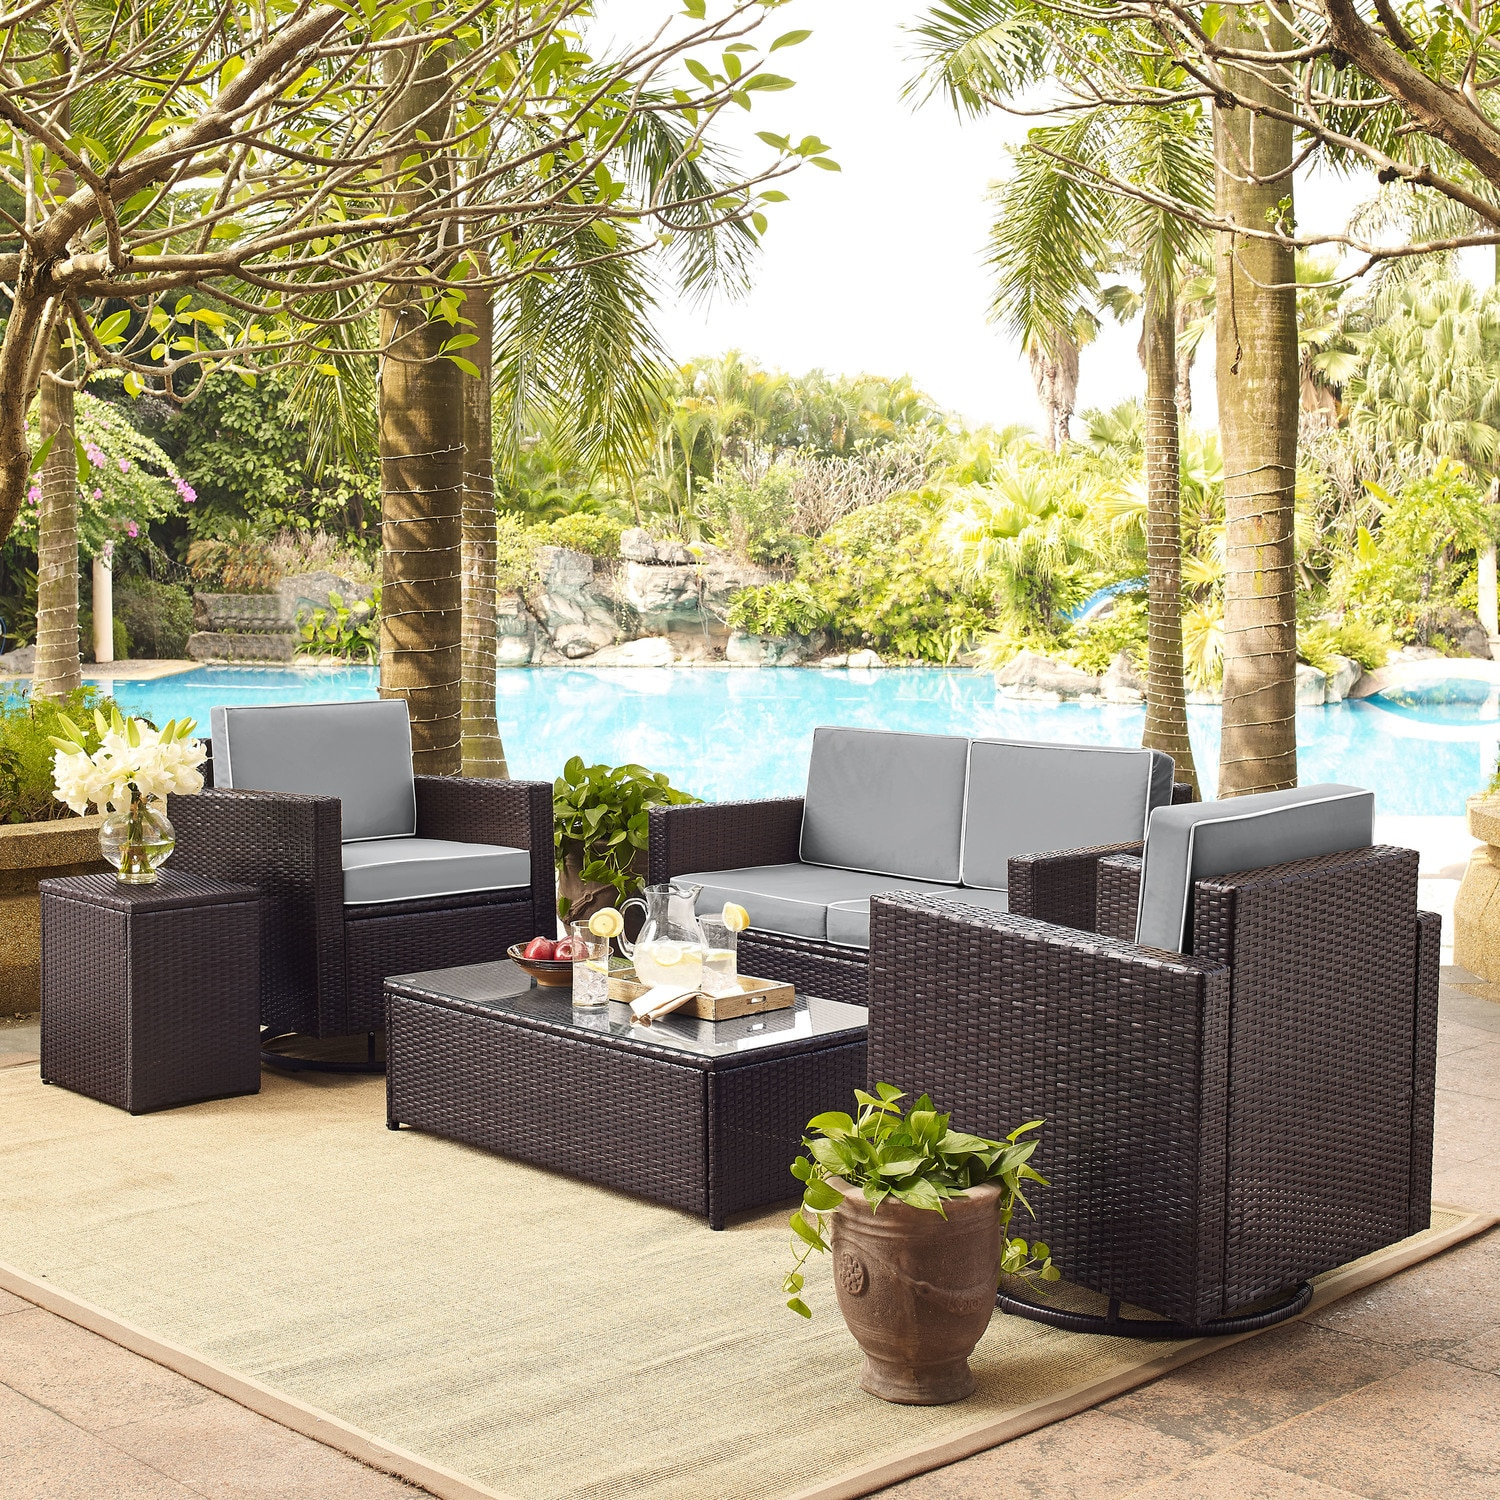 Outdoor Furniture - Aldo Outdoor Loveseat, 2 Swivel Chairs, Coffee Table, and End Table Set - Gray